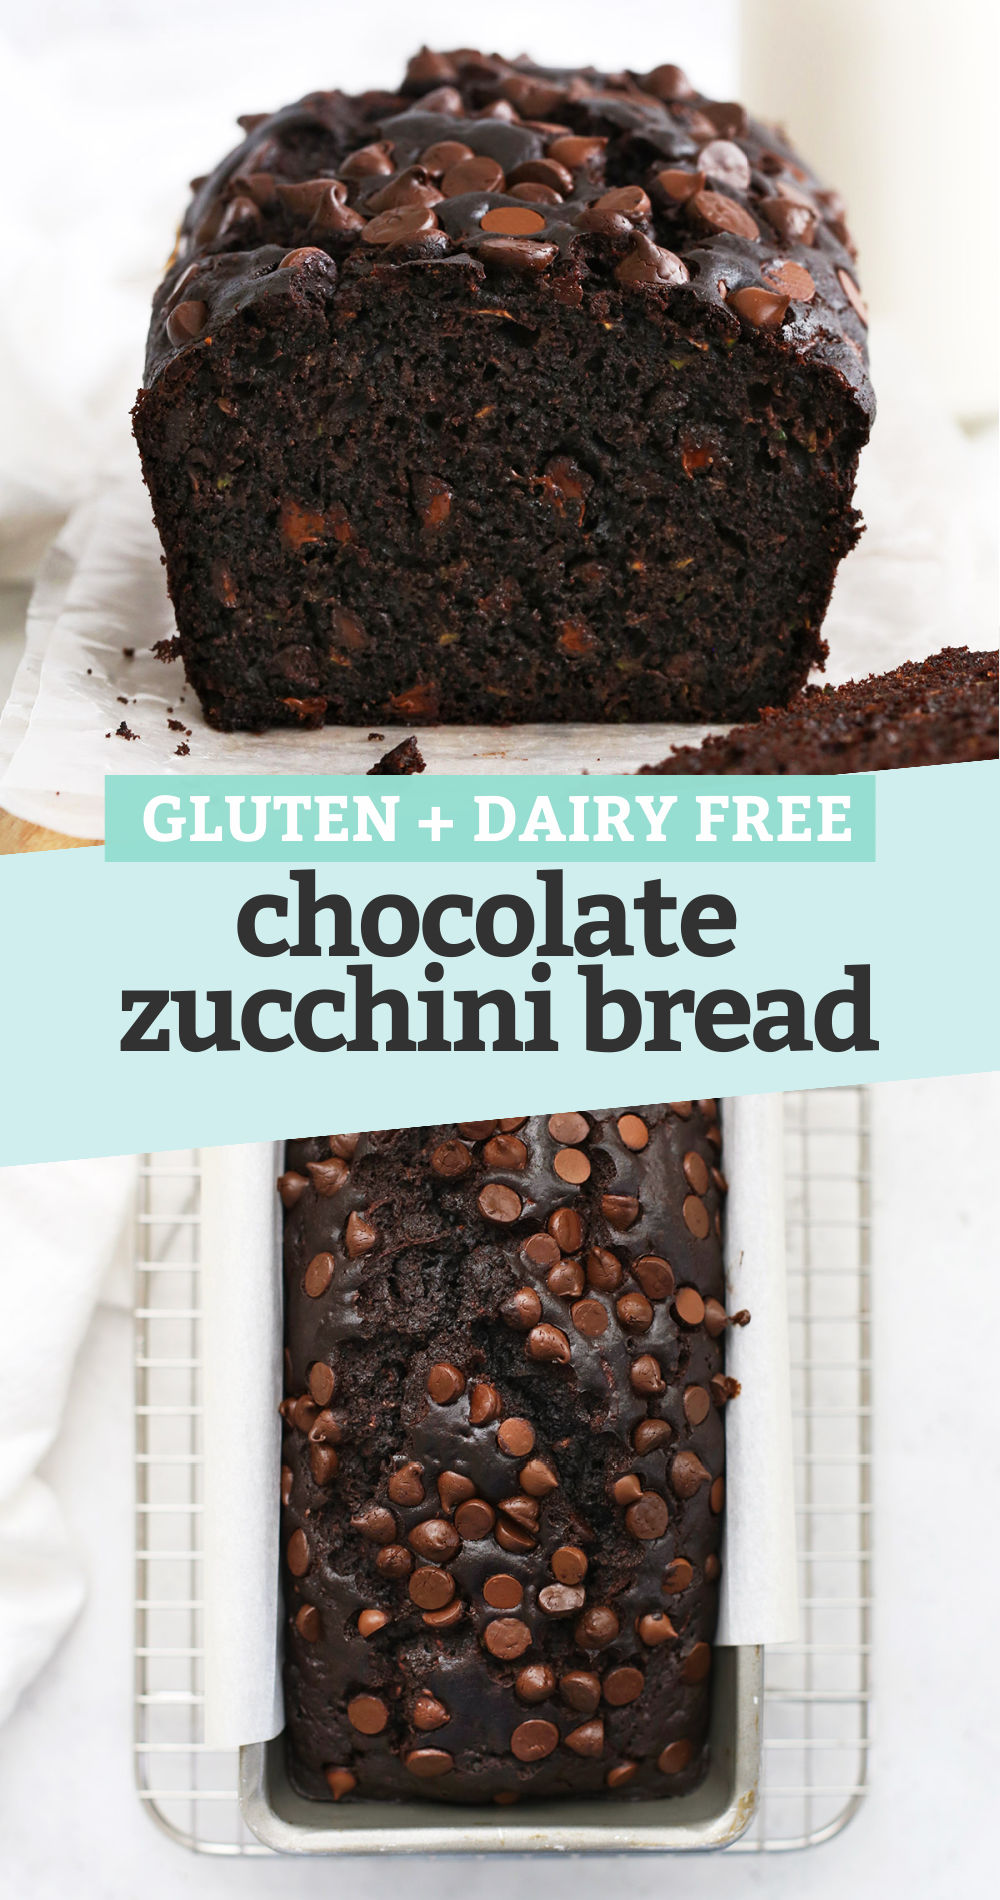 """Collage of images of gluten-free chocolate zucchini bread with text overlay that reads """"Gluten + Dairy Free Chocolate Zucchini Bread"""""""